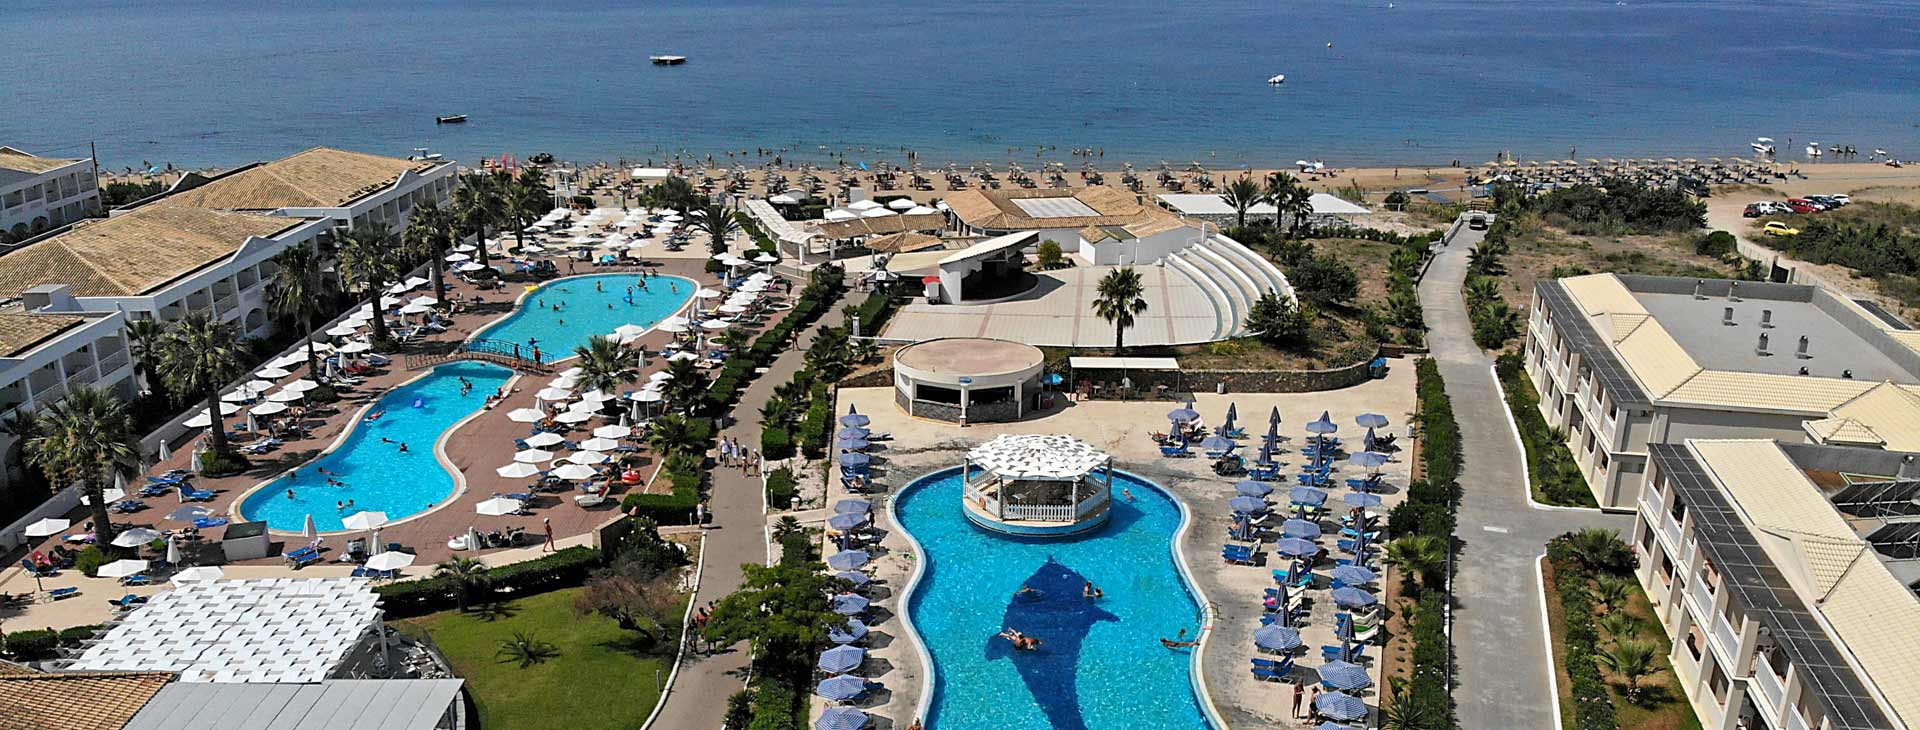 Labranda sandy beach resort grecja korfu 3742 98135 141226 1920x730